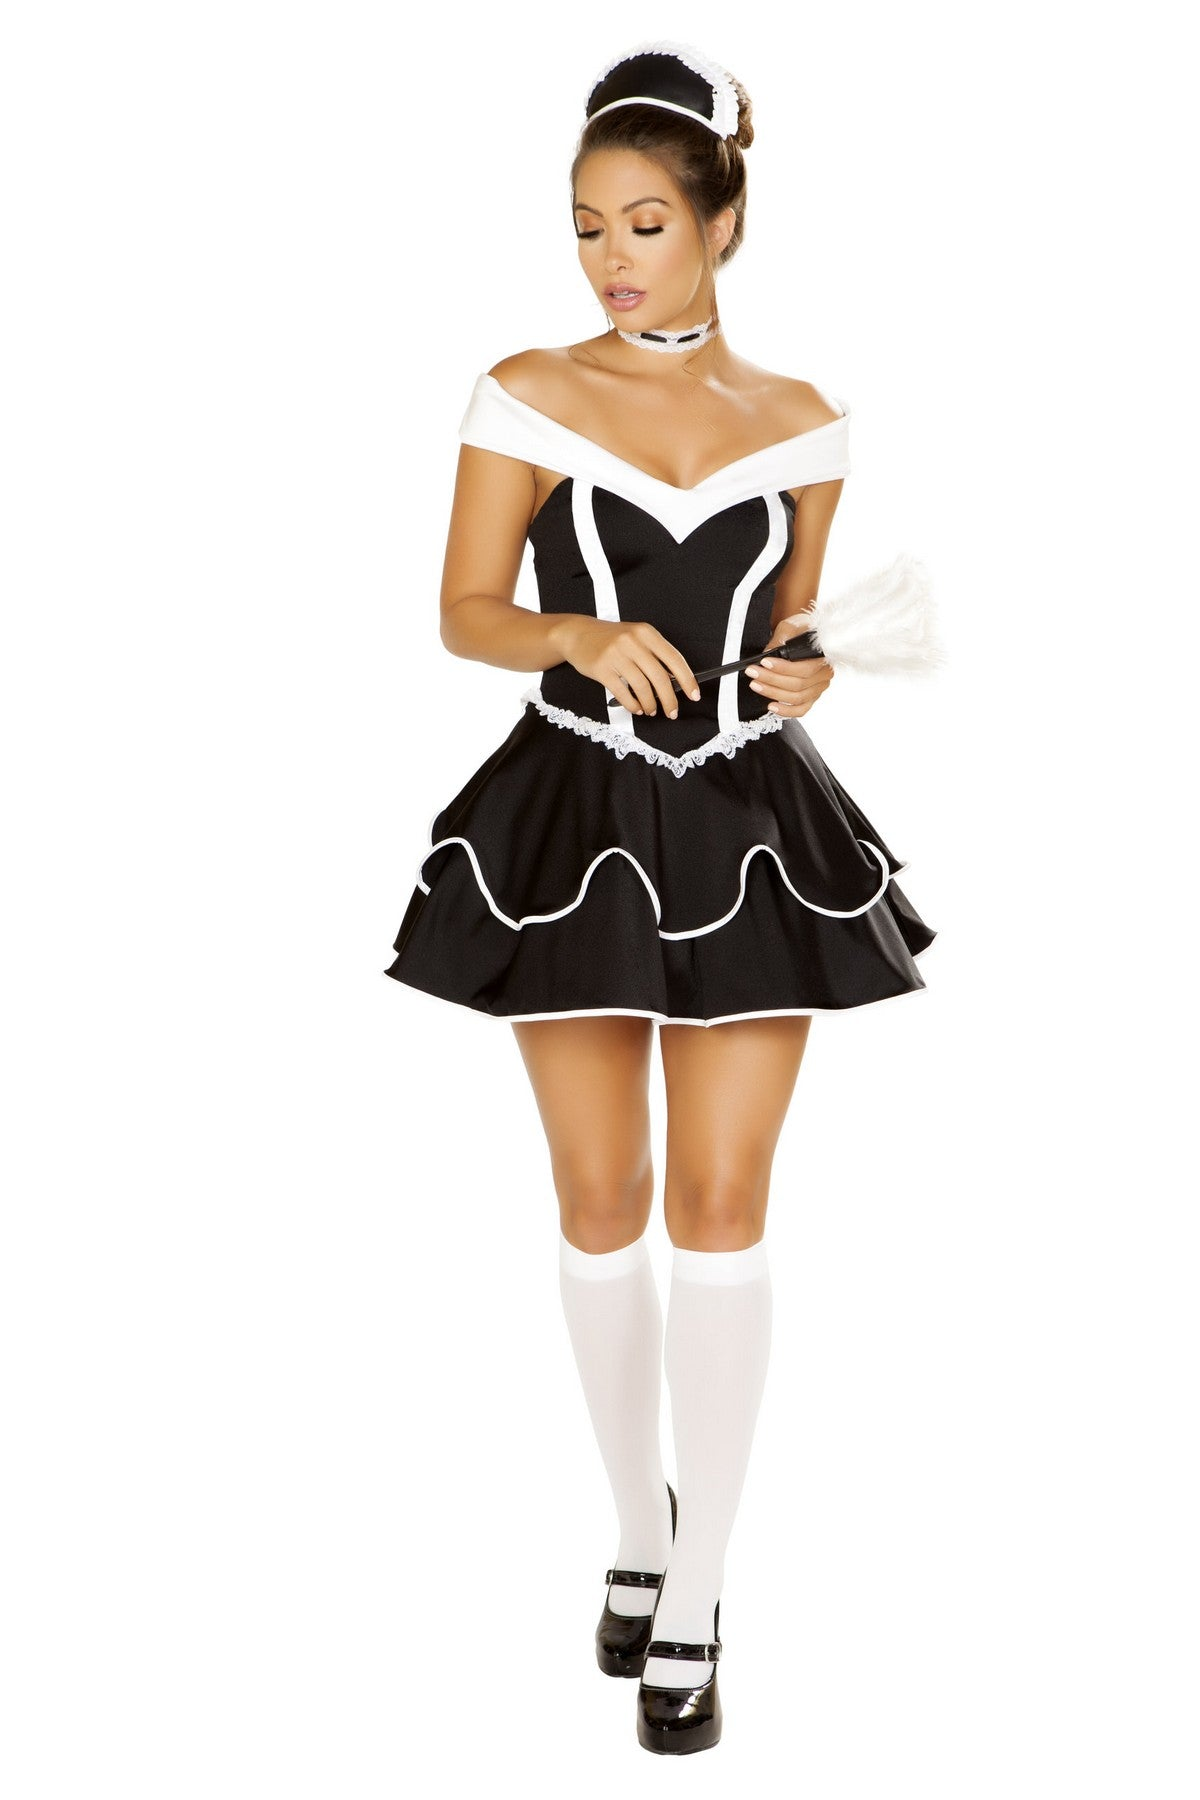 Alluring Maid Costume Set